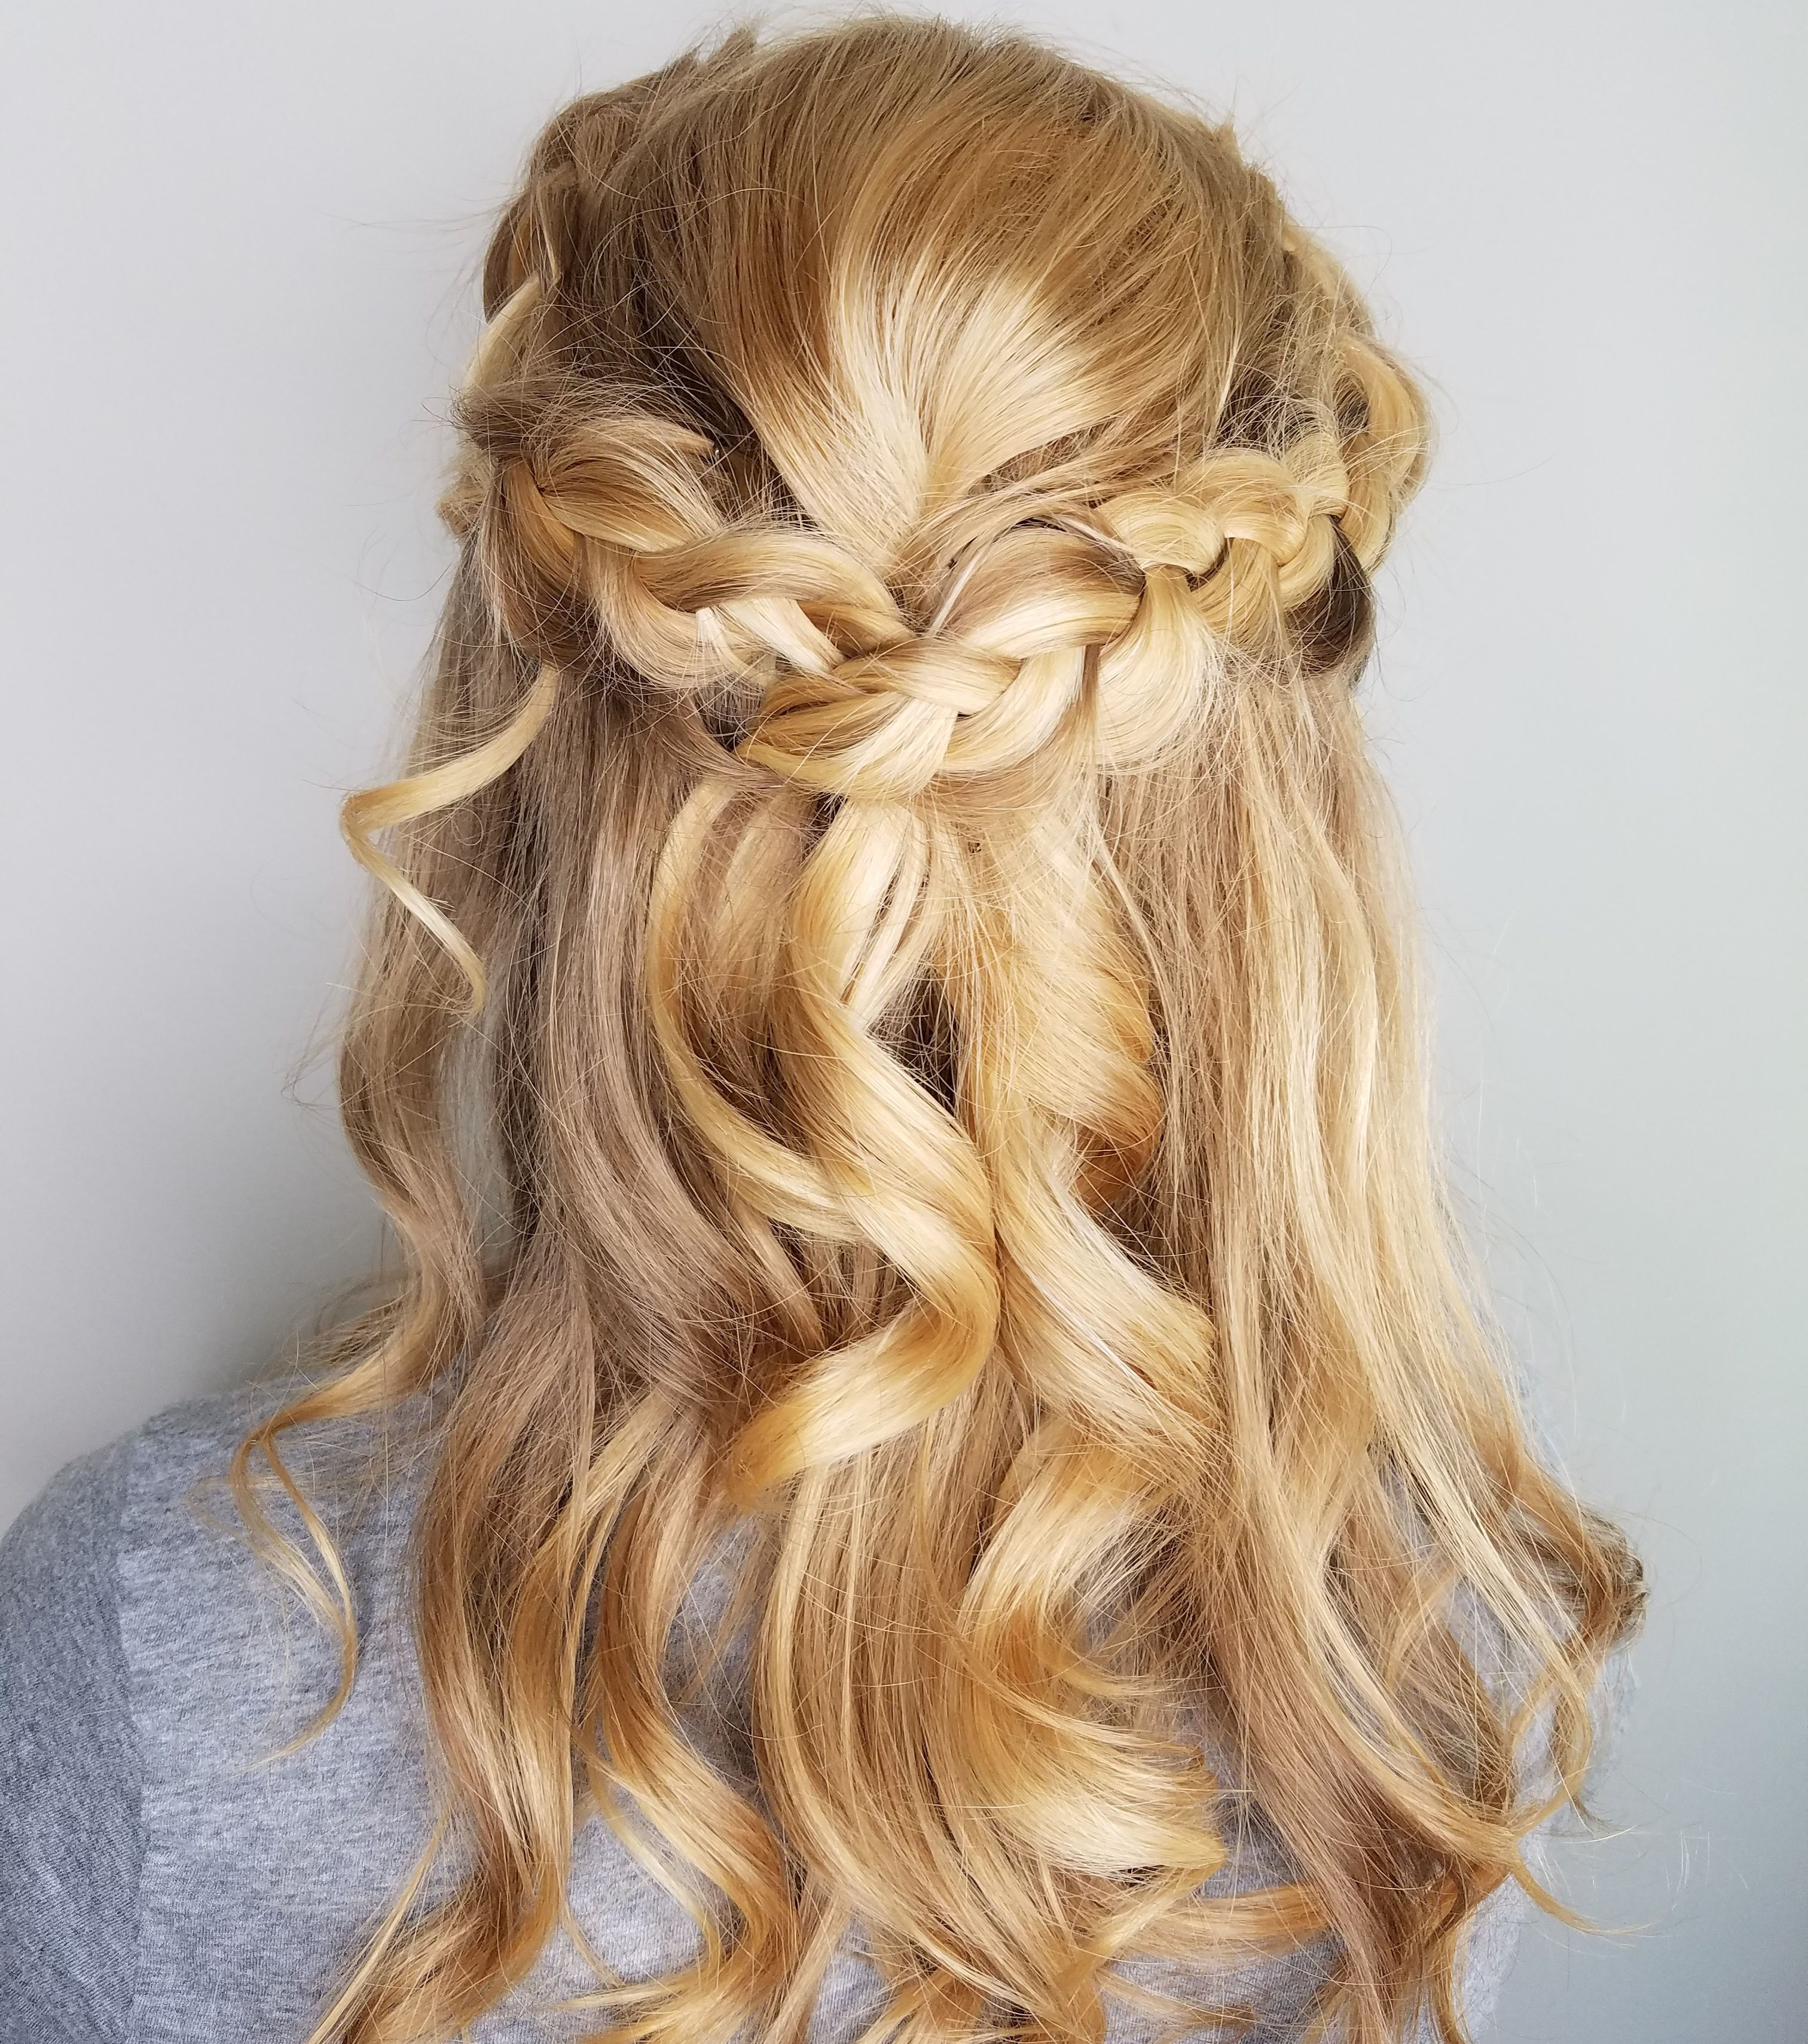 Claireanderrikacom prom hair style half up curls with a loose braid